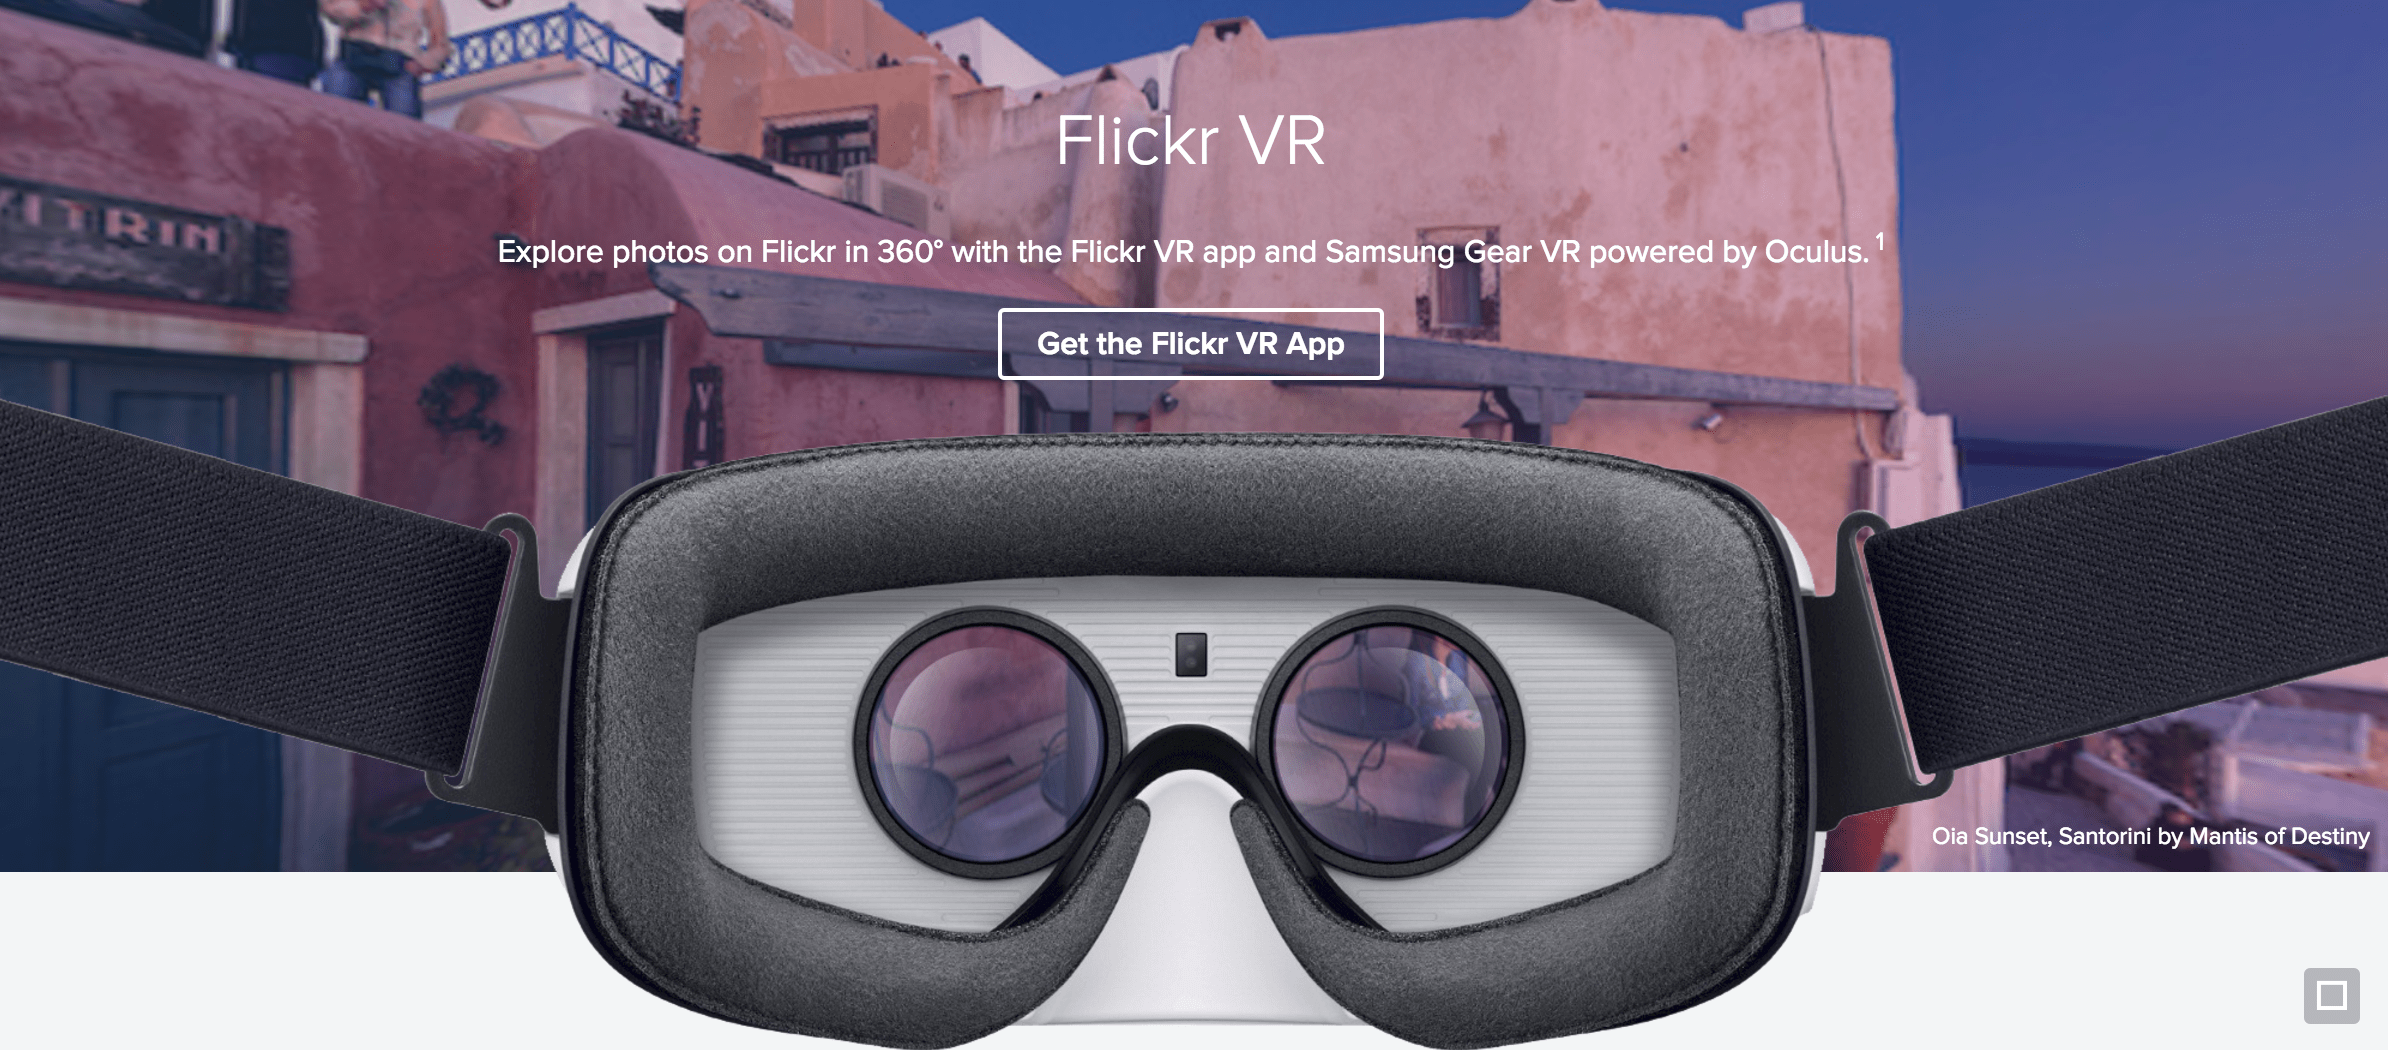 Flickr Virtual Reality